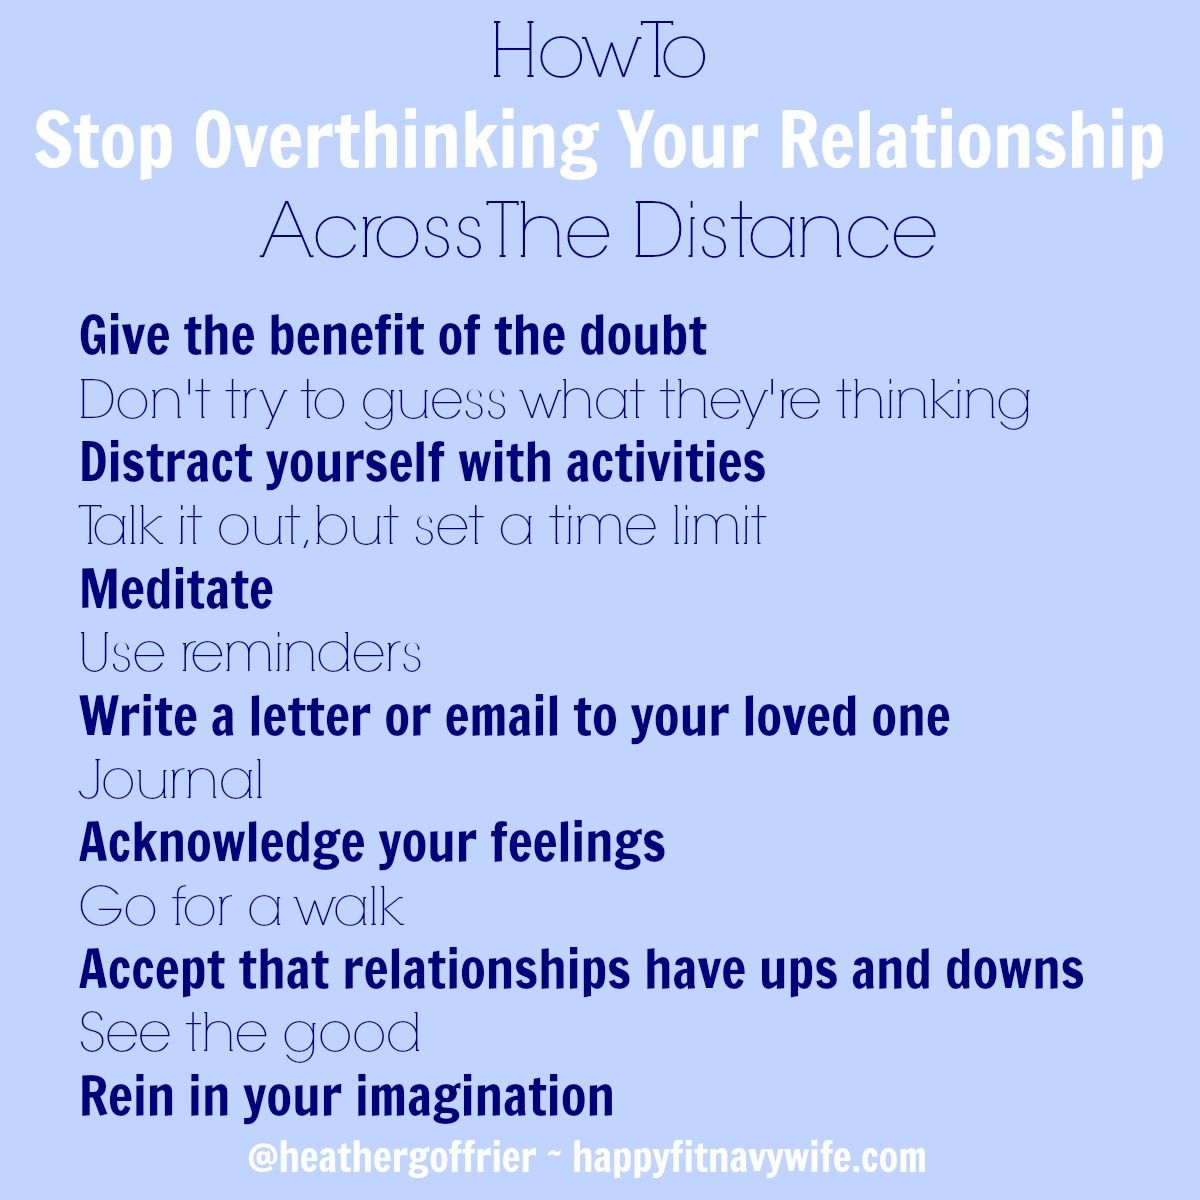 How to stop overthinking your relationship